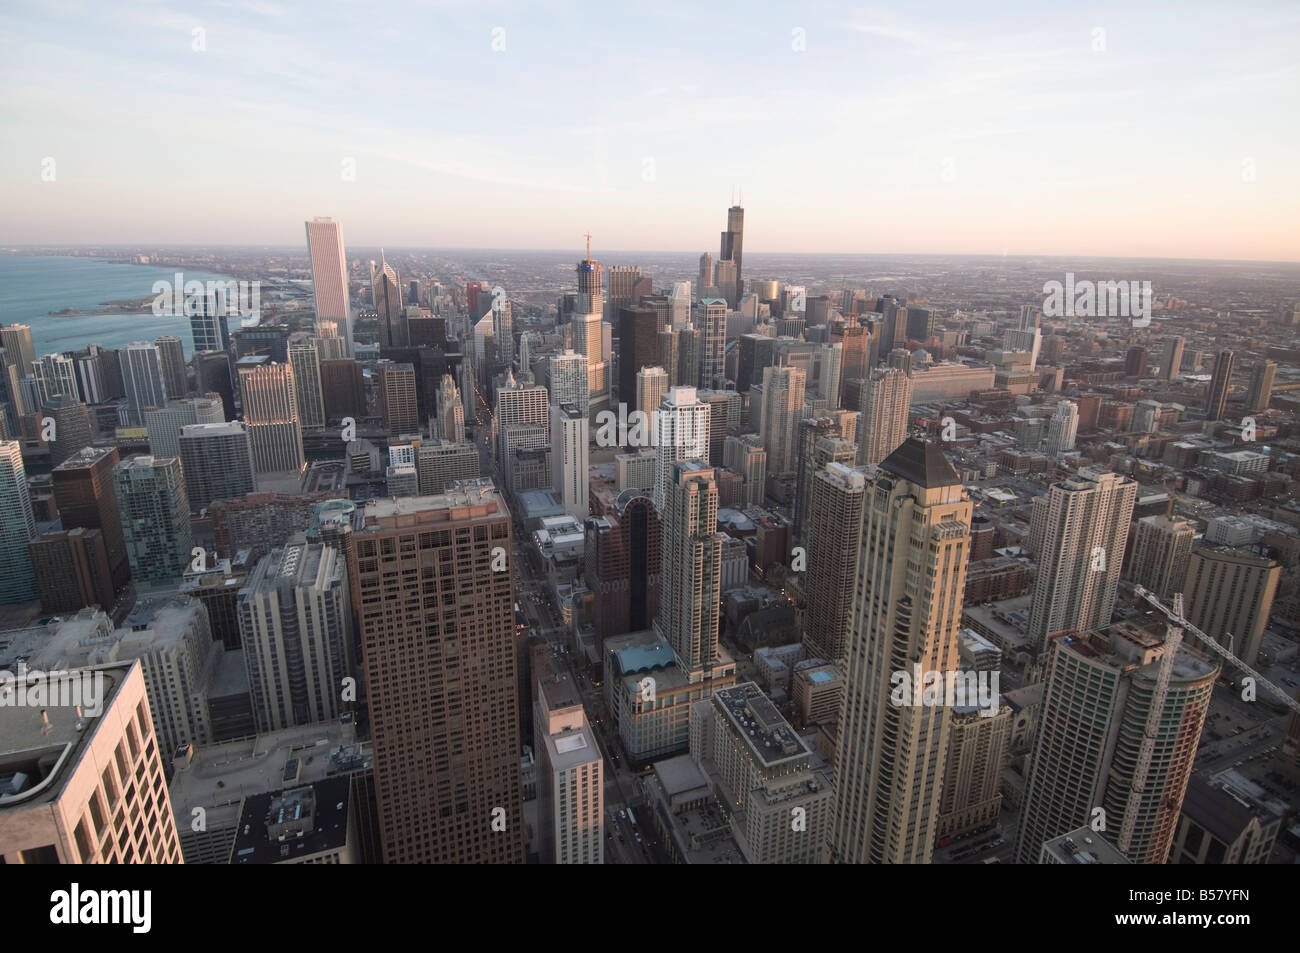 Chicago at dusk taken from the Hancock Building, Chicago, Illinois, United States of America, North America - Stock Image